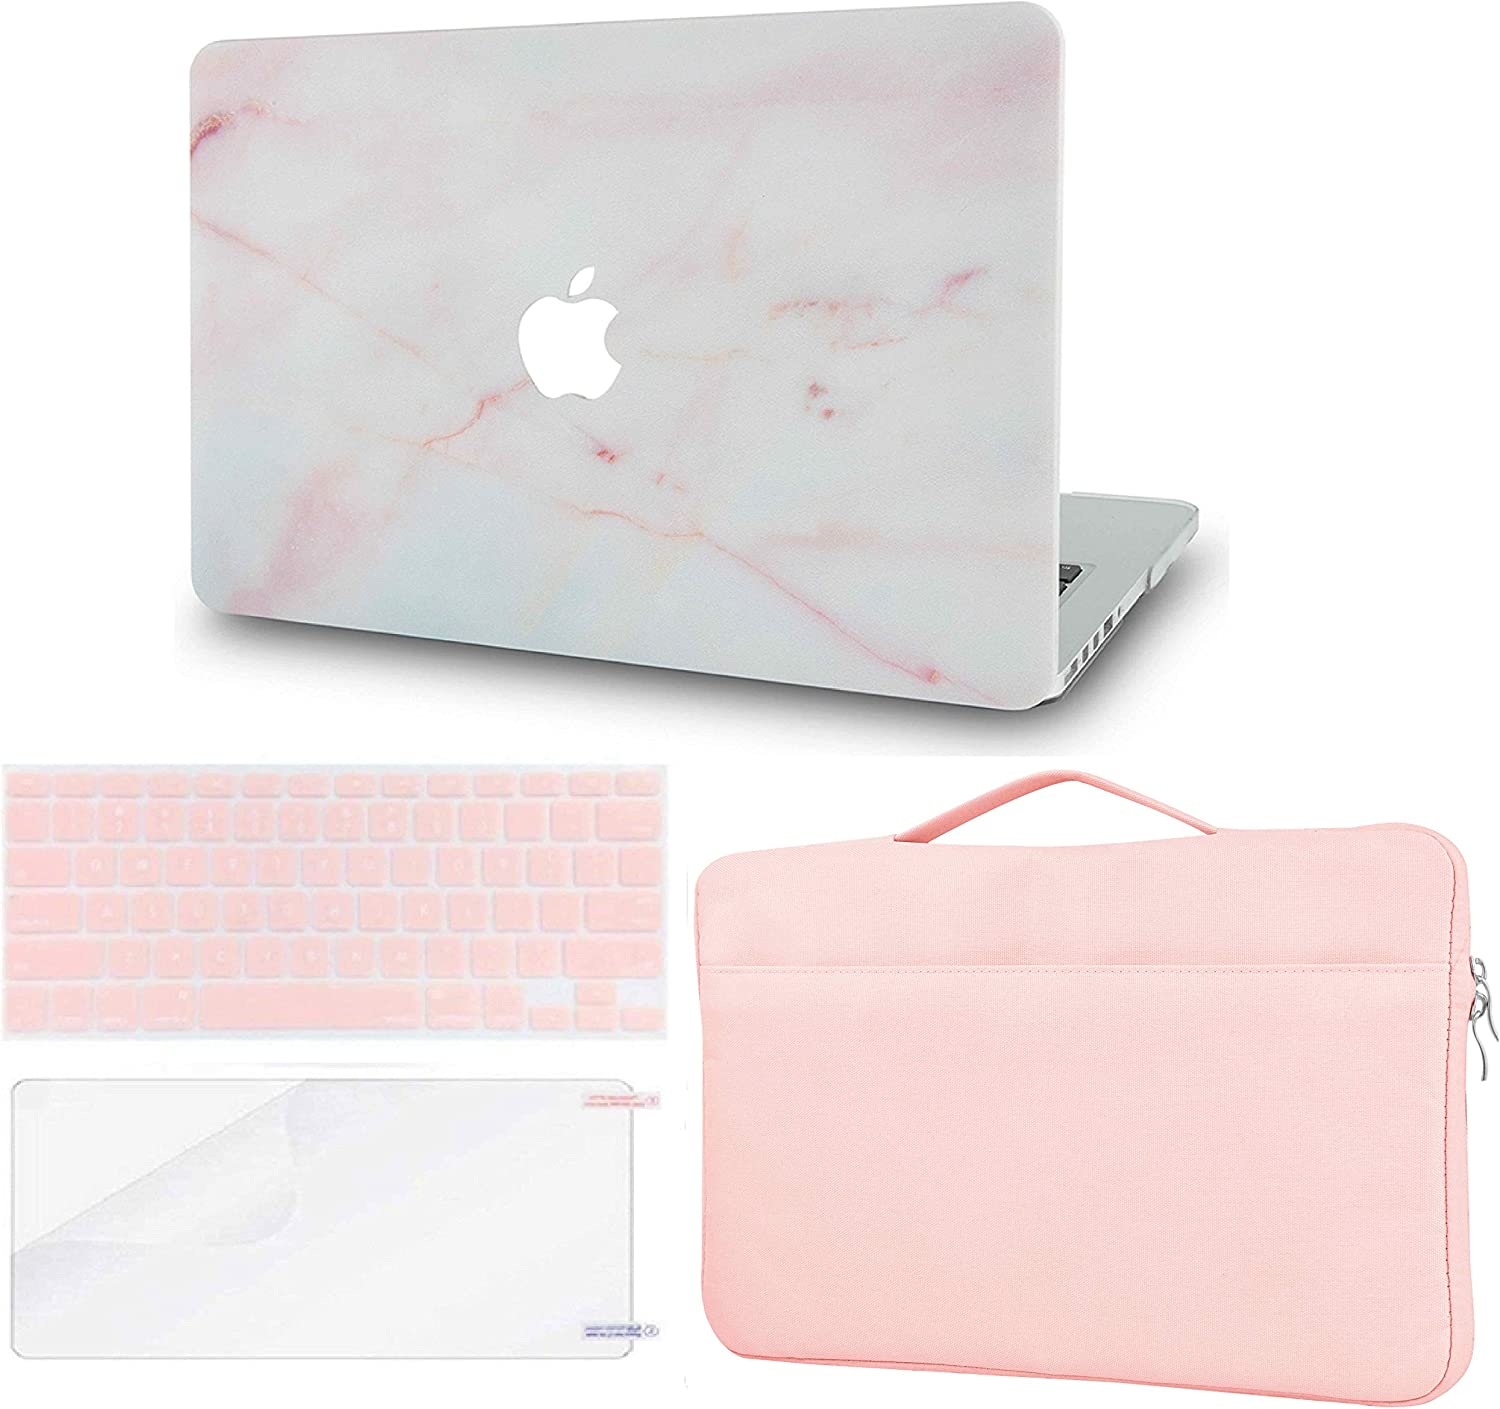 LuvCase 4 in 1 Laptop Case Compatible with MacBook Air 13 Inch (2018-2020) A1932 (Touch ID) Retina Display HardShellCover, Sleeve Bag, Keyboard Cover & Screen Protector (Pink Marble)